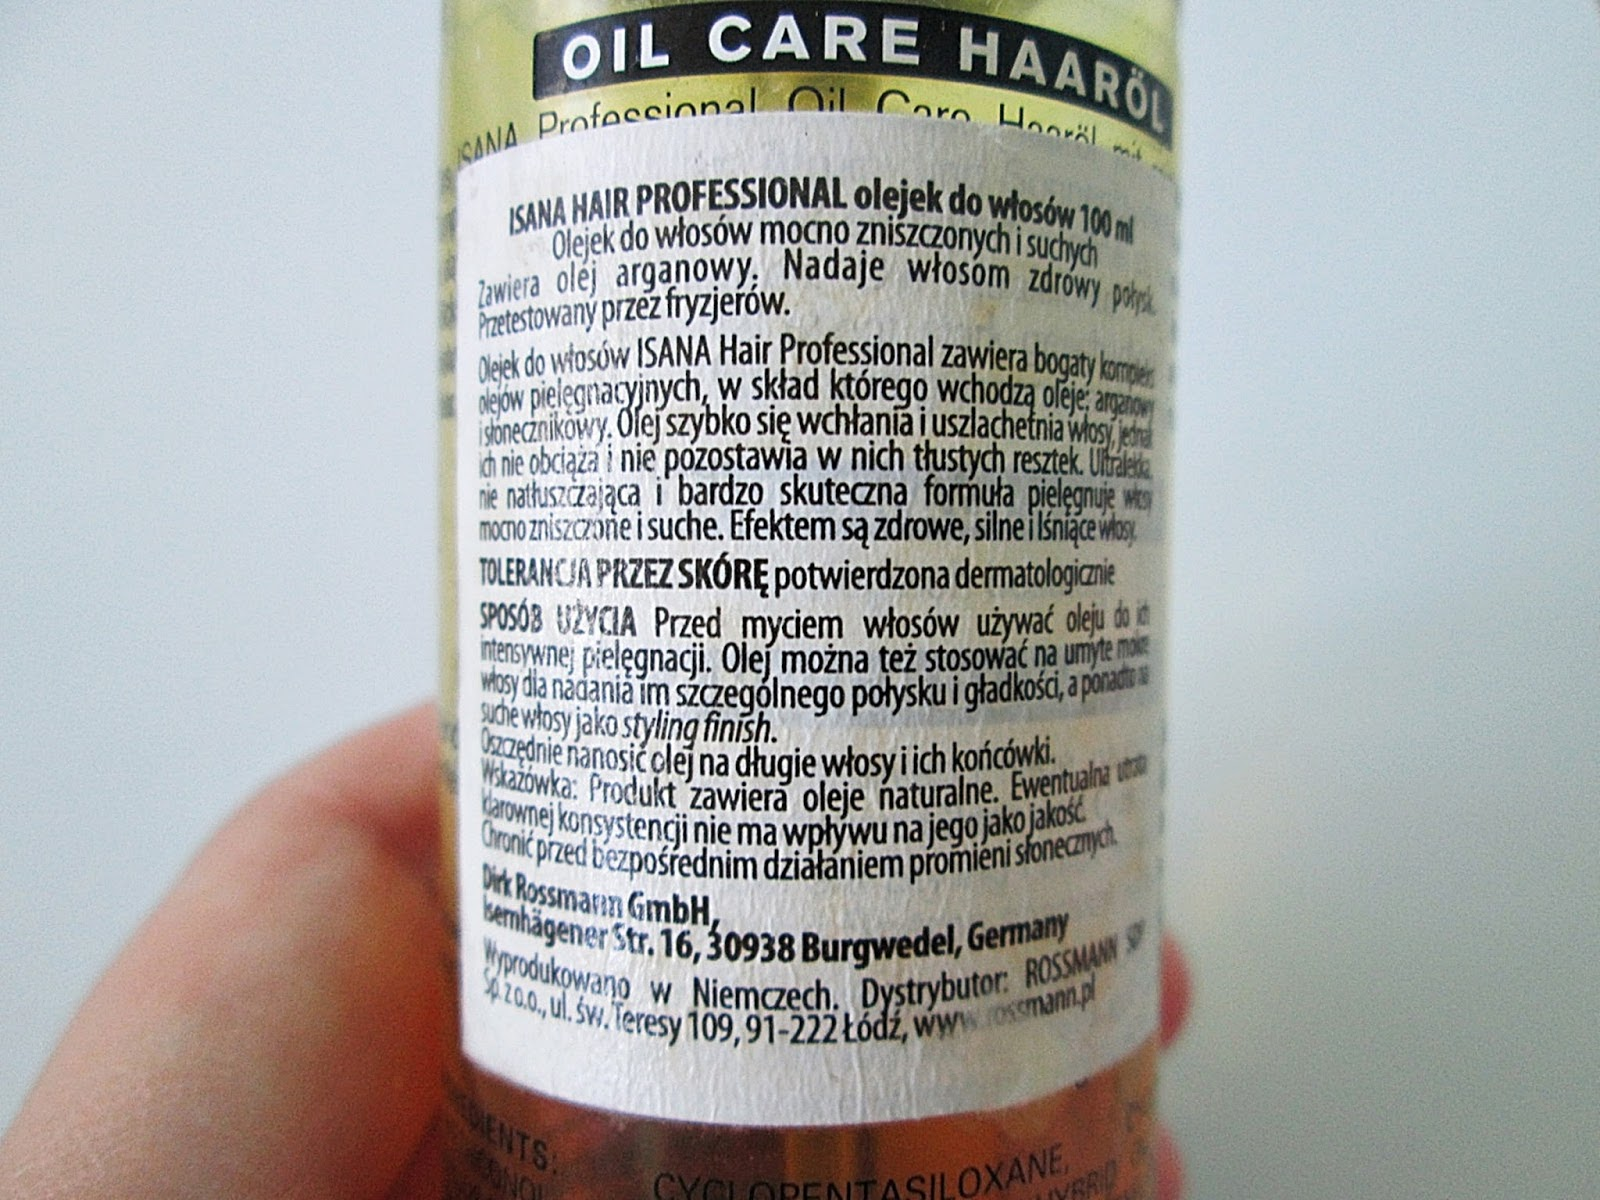 Isana Hair Professional Oil Care Haaröl